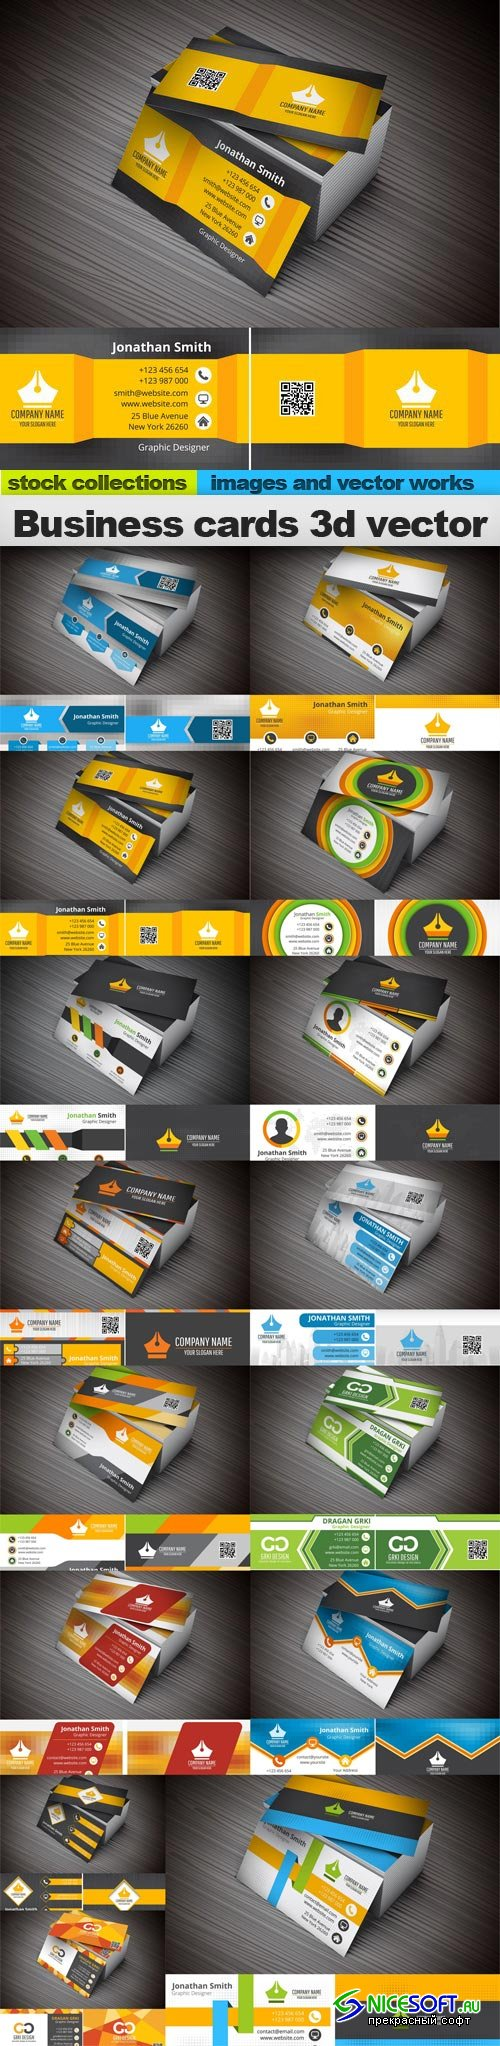 Business cards 3d vector, 15 x EPS